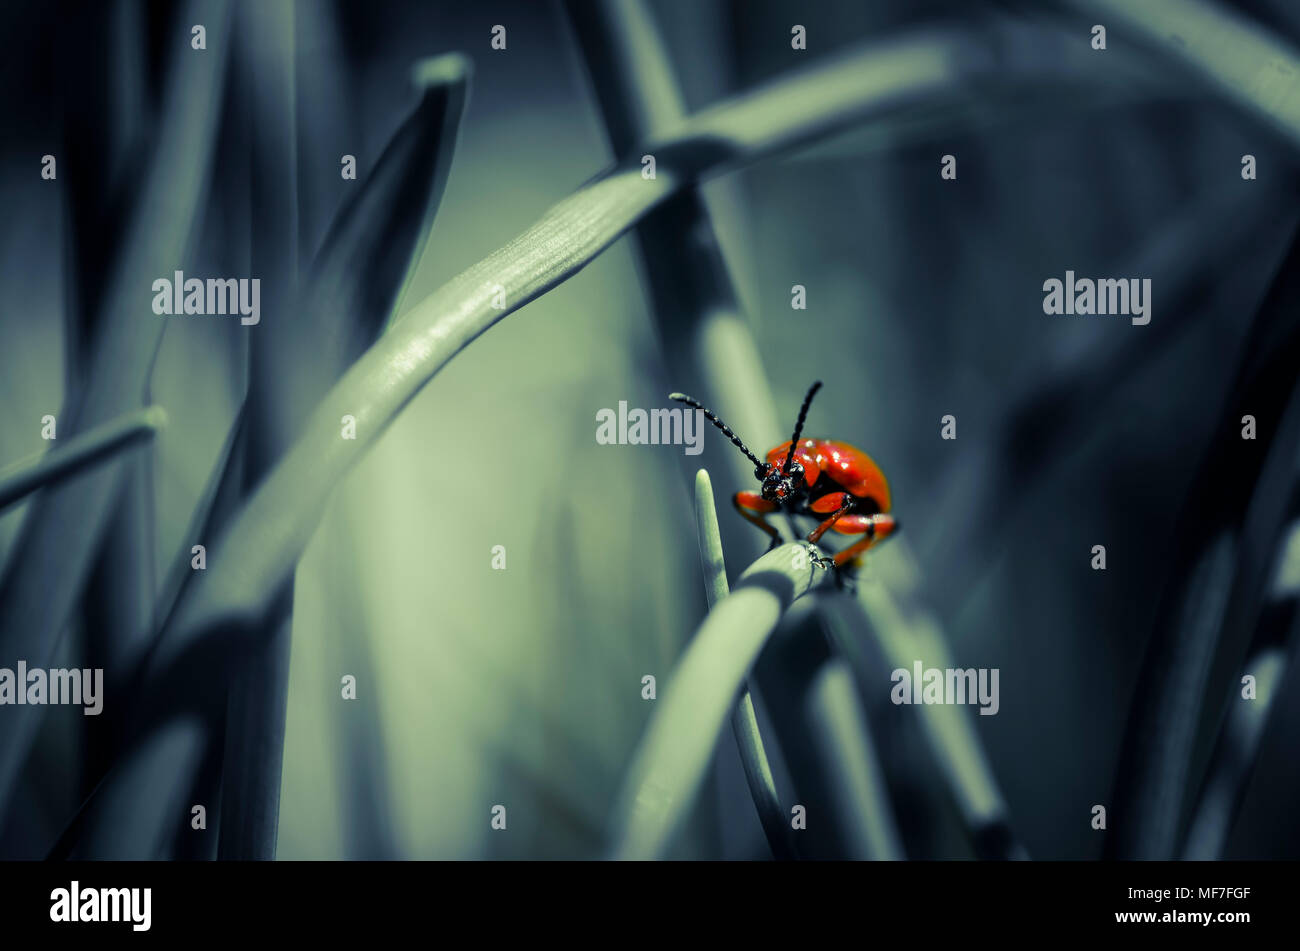 Lily leaf beetle on blade of grass - Stock Image